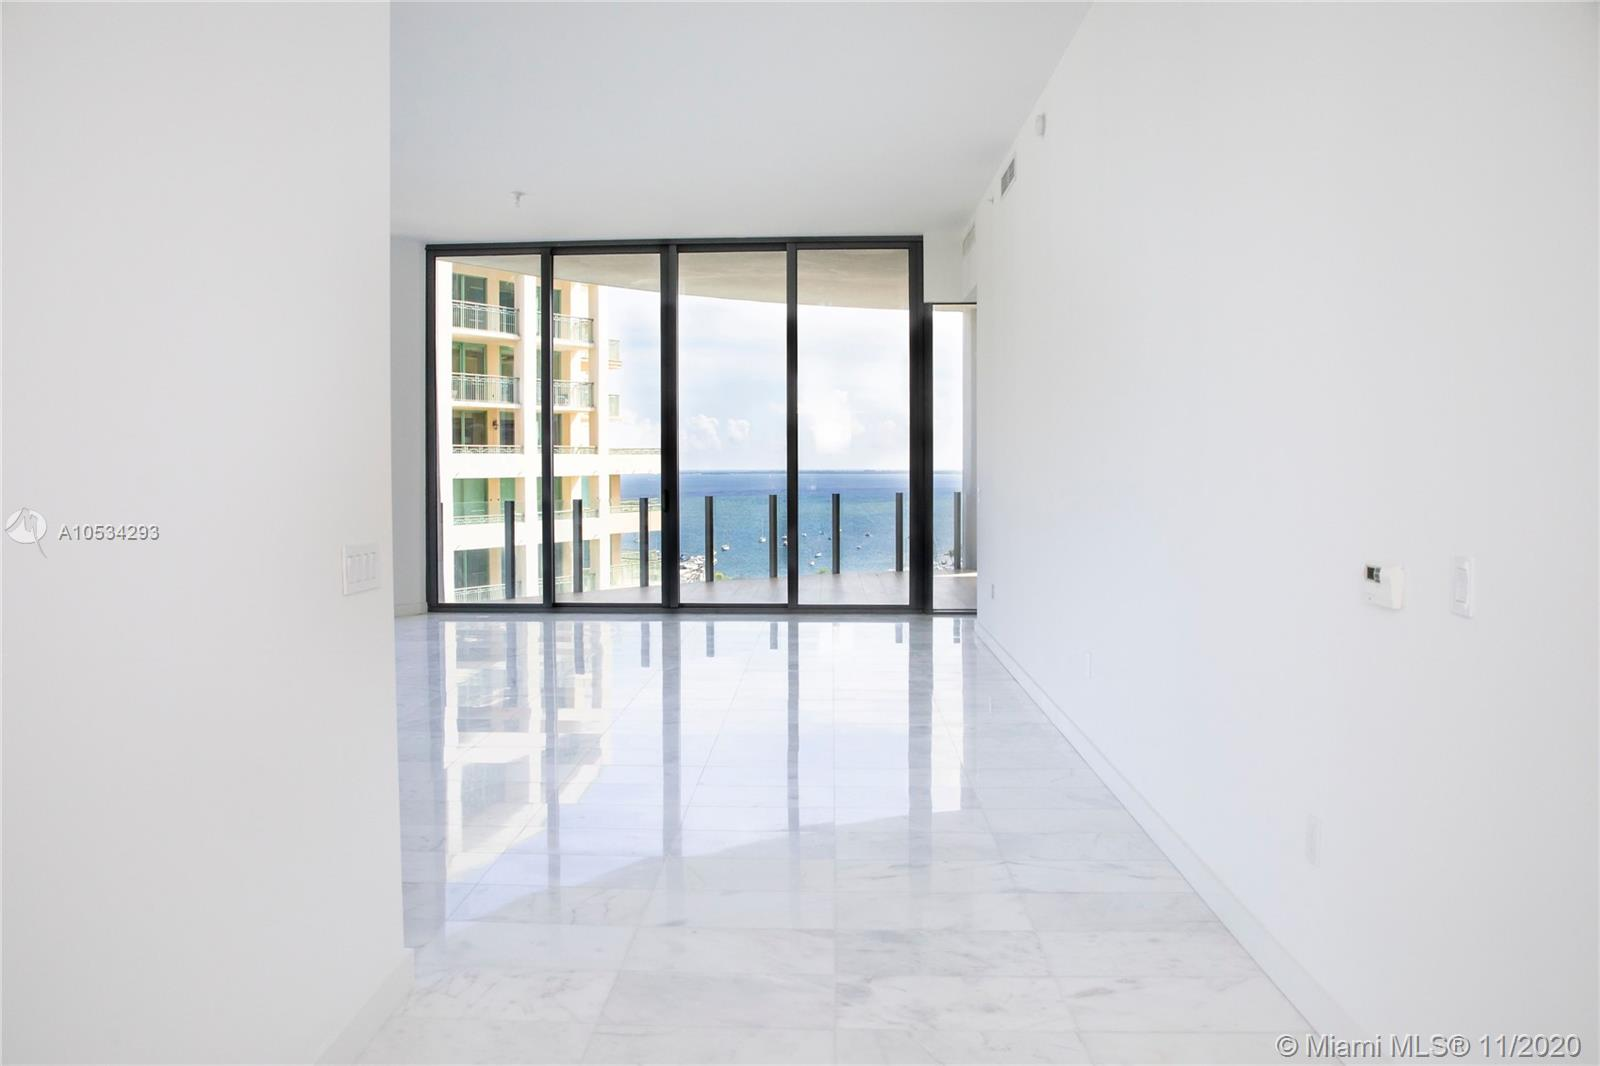 2821 S Bayshore Dr # 17D, Coconut Grove, Florida 33133, 3 Bedrooms Bedrooms, ,4 BathroomsBathrooms,Residential,For Sale,2821 S Bayshore Dr # 17D,A10534293